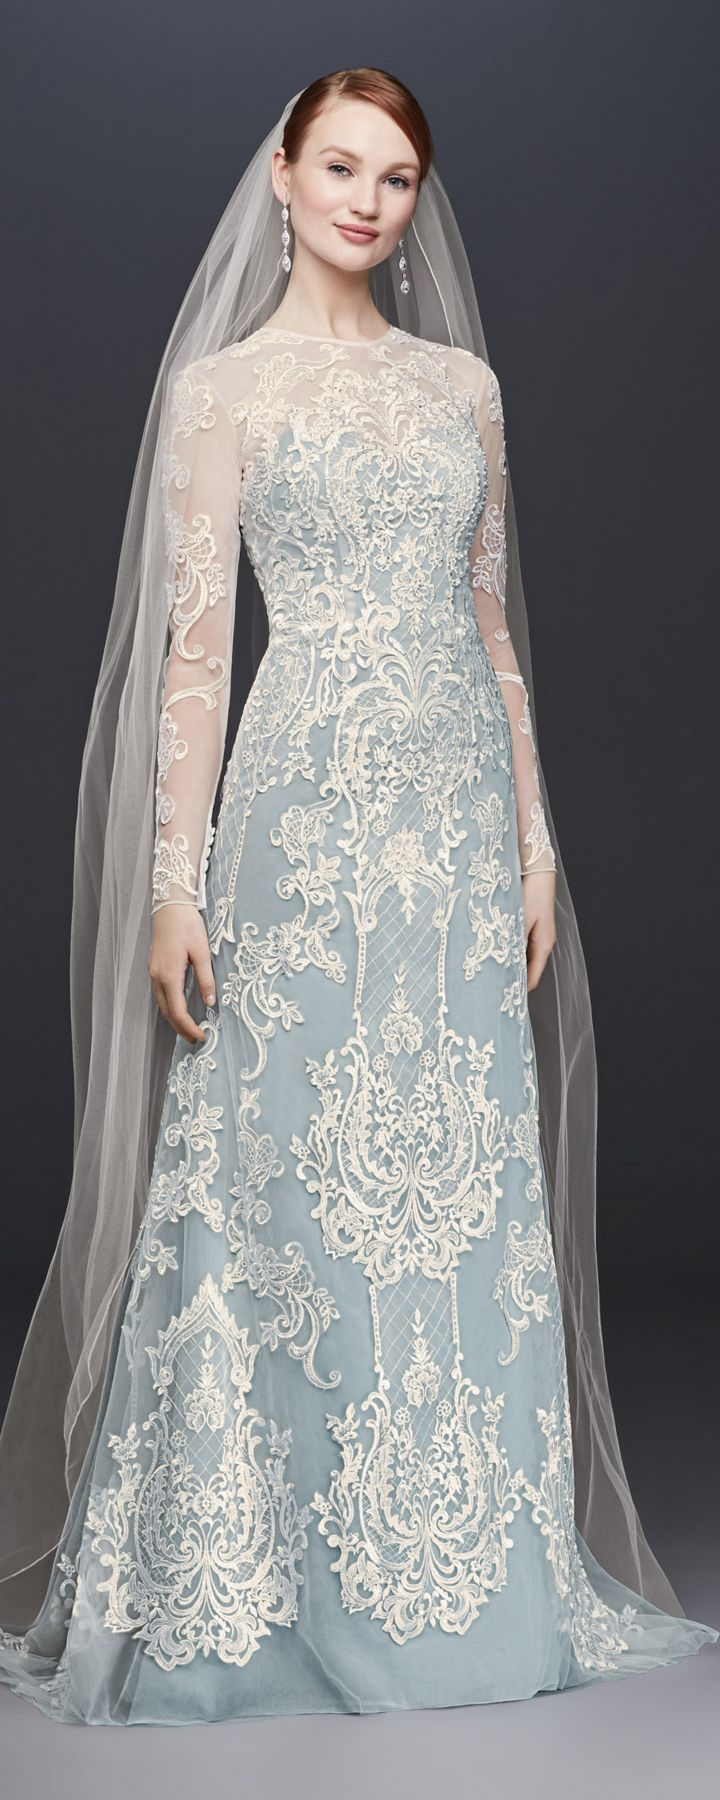 Illusion lace longsleeve sheath wedding dress wedding